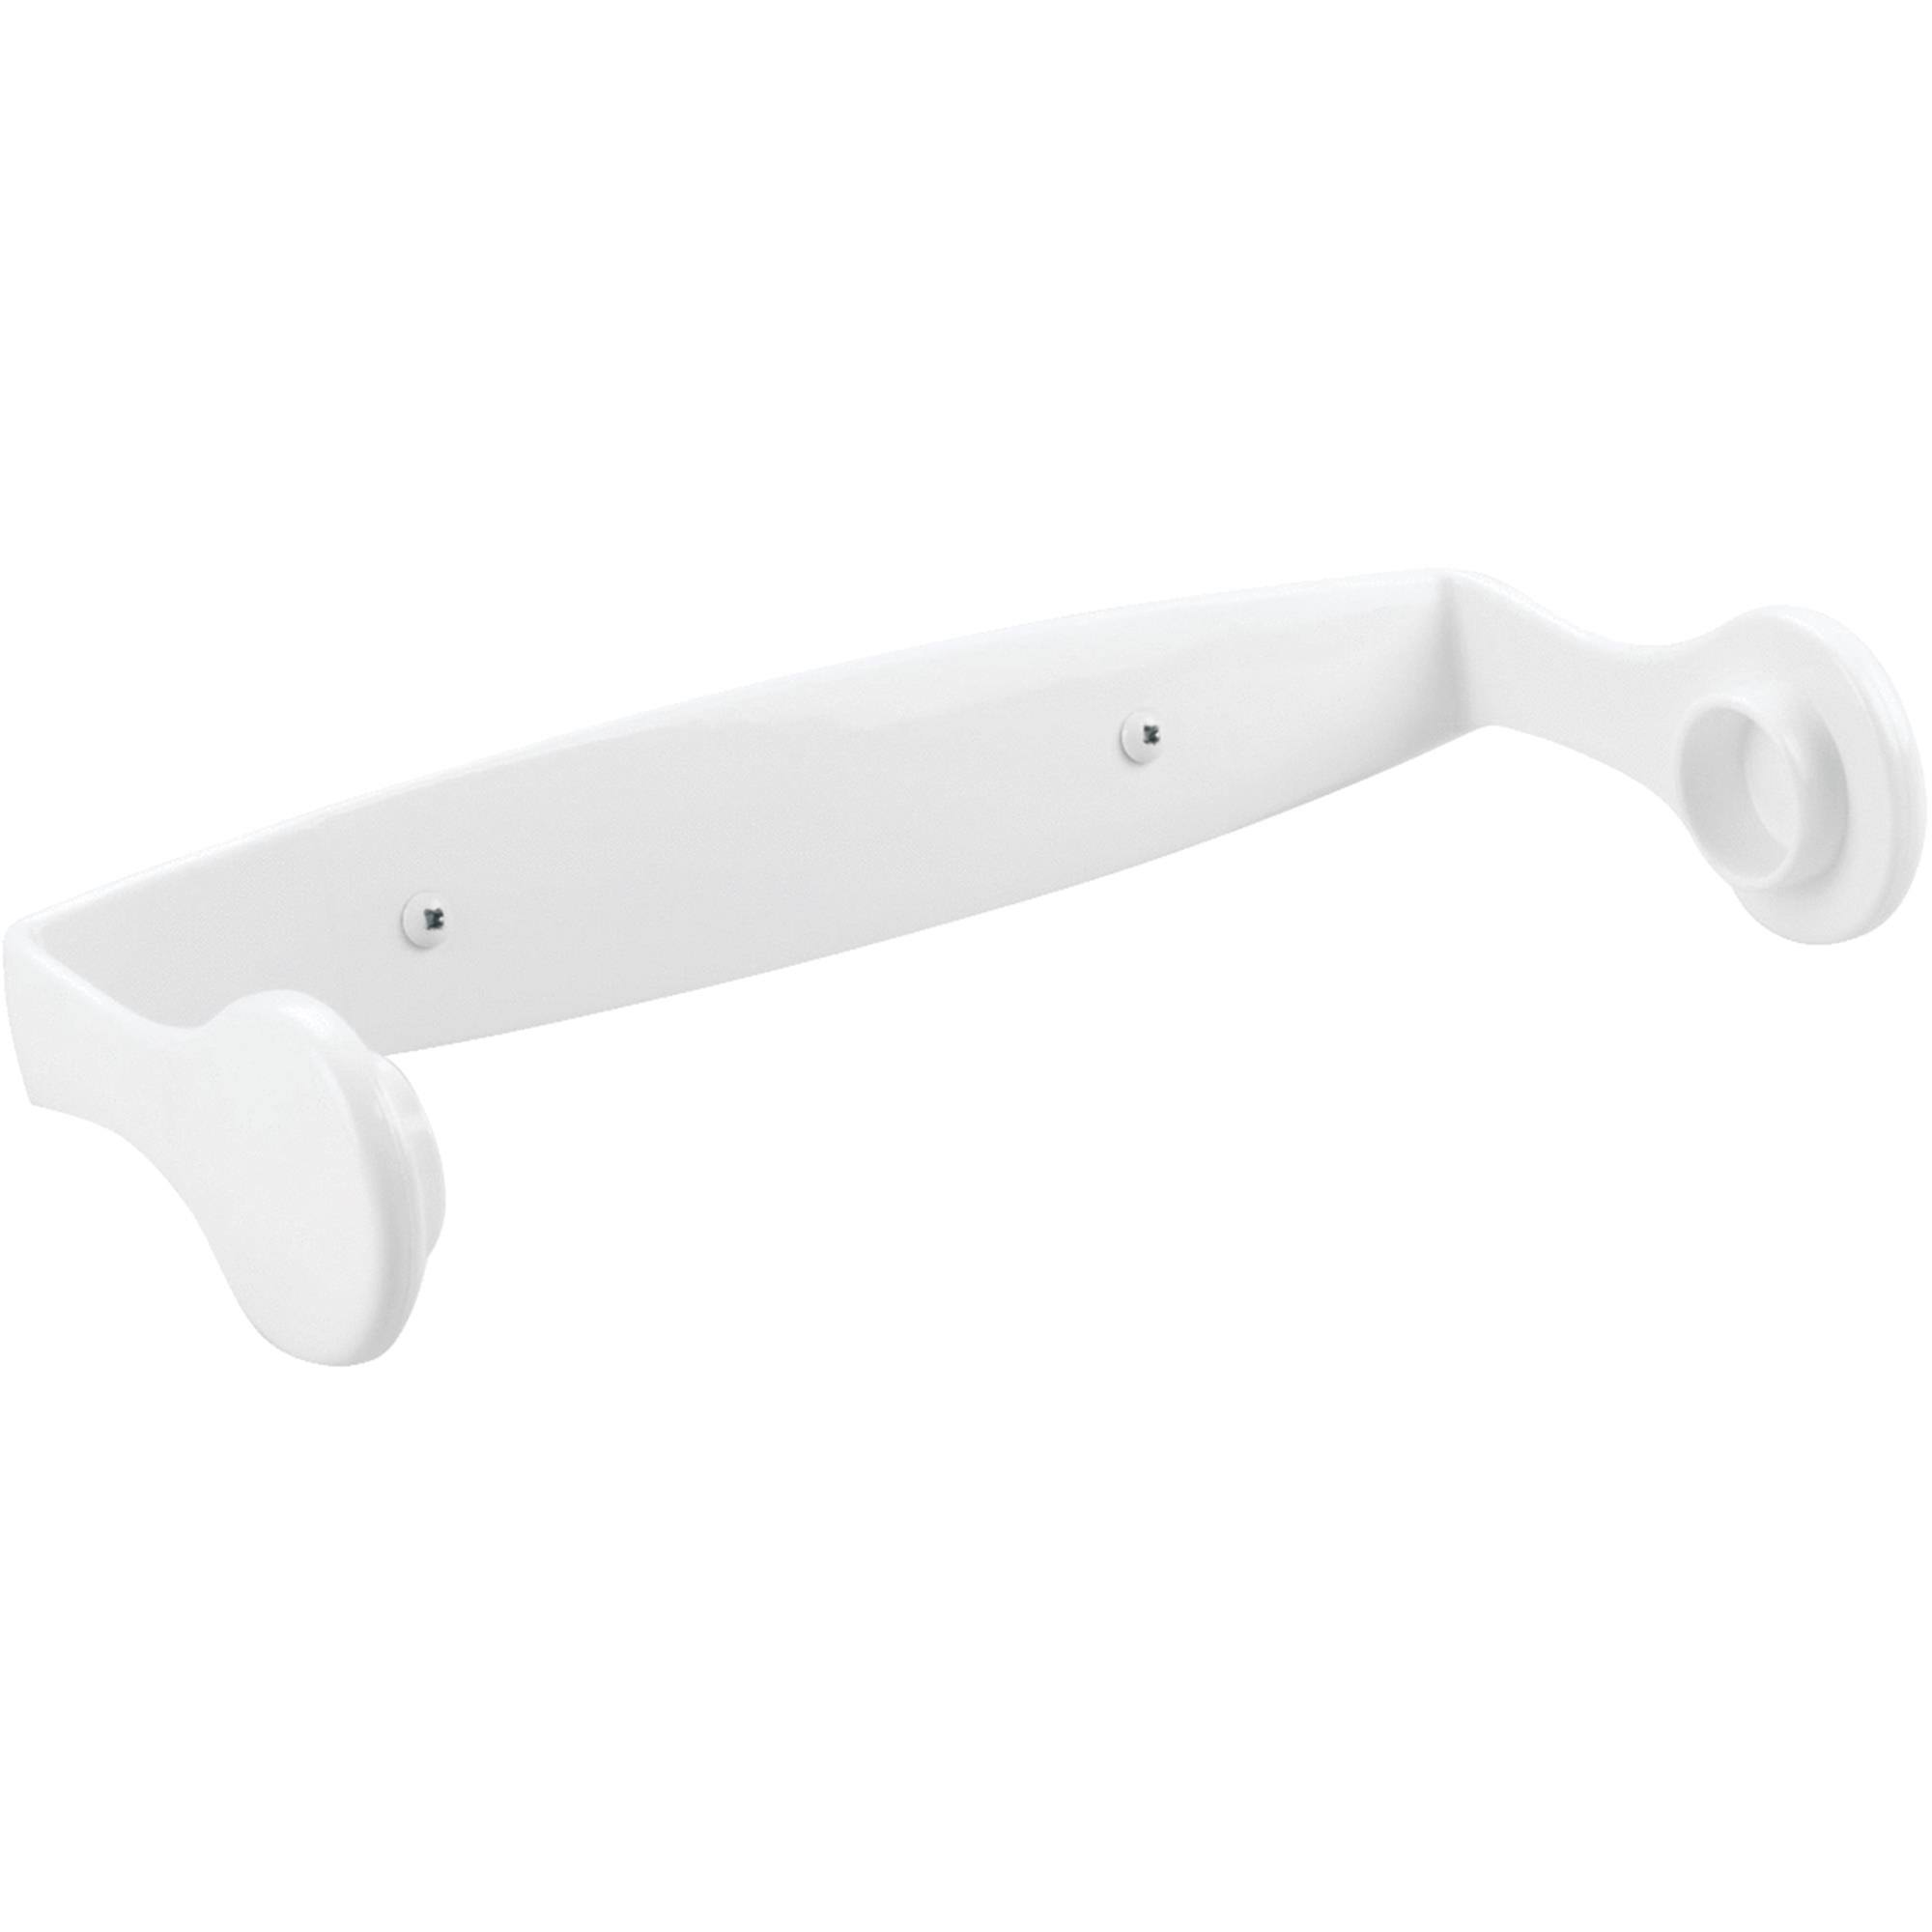 Interdesign 48541 Clarity Wall Mount Paper Towel Holder, White